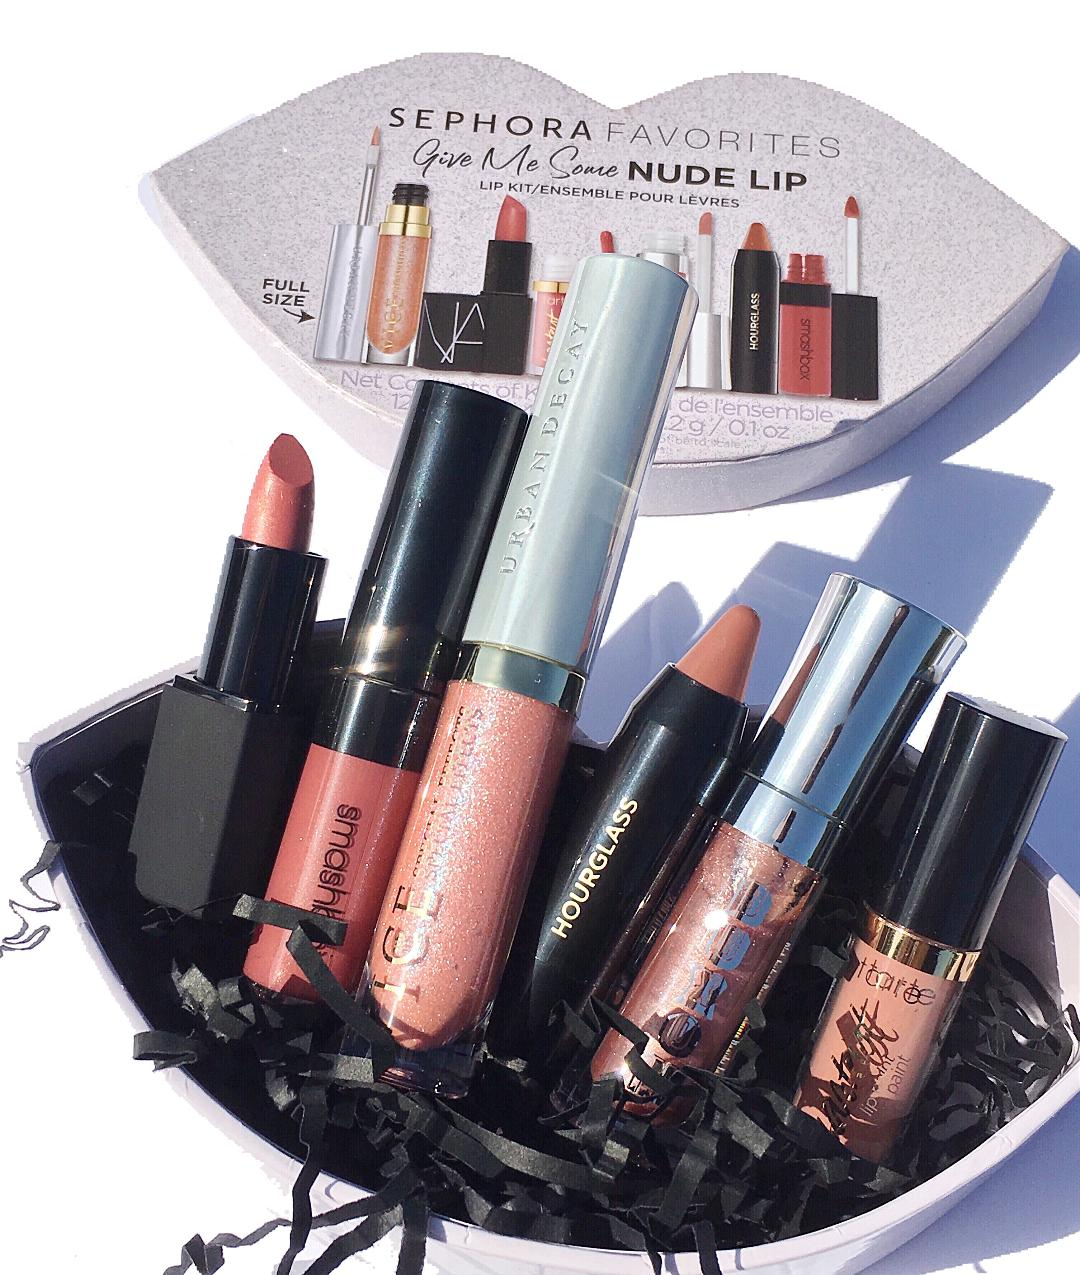 Sephora Favorites Give Me Some Nude Lip 2018 Swatches Sephora spring sale www.calibeaute.com